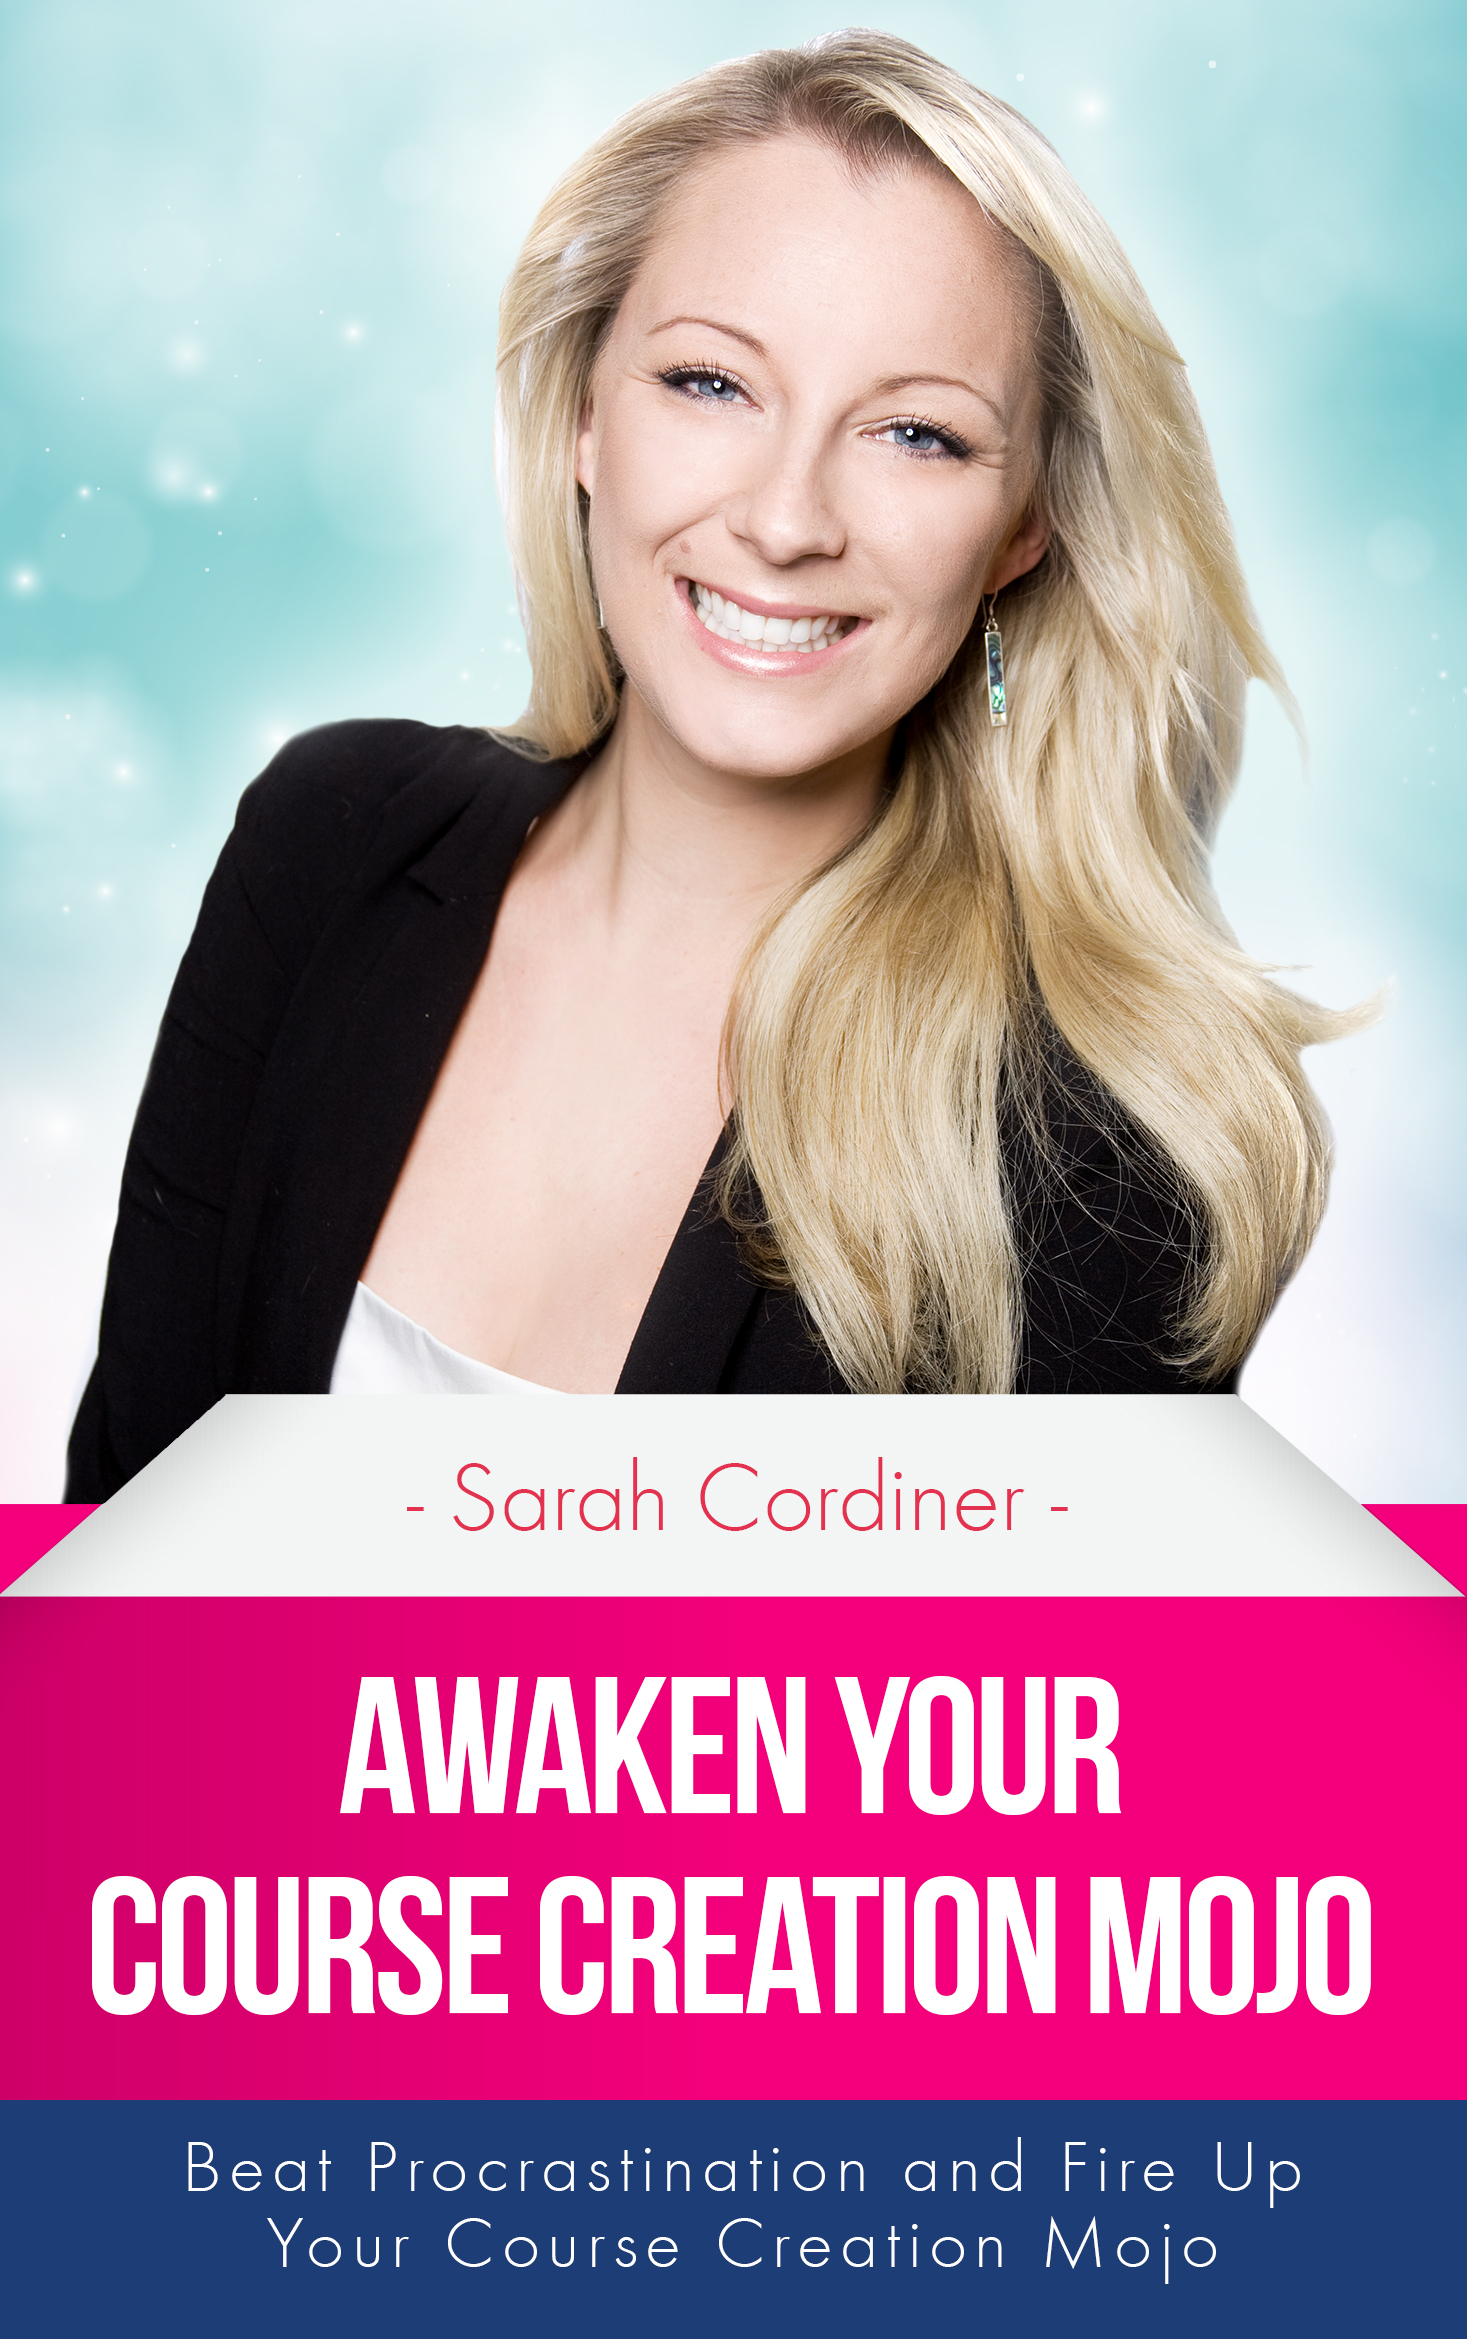 awaken your course creation mojo - beat procrastination and fire up your course creation motivation - book by sarah cordiner